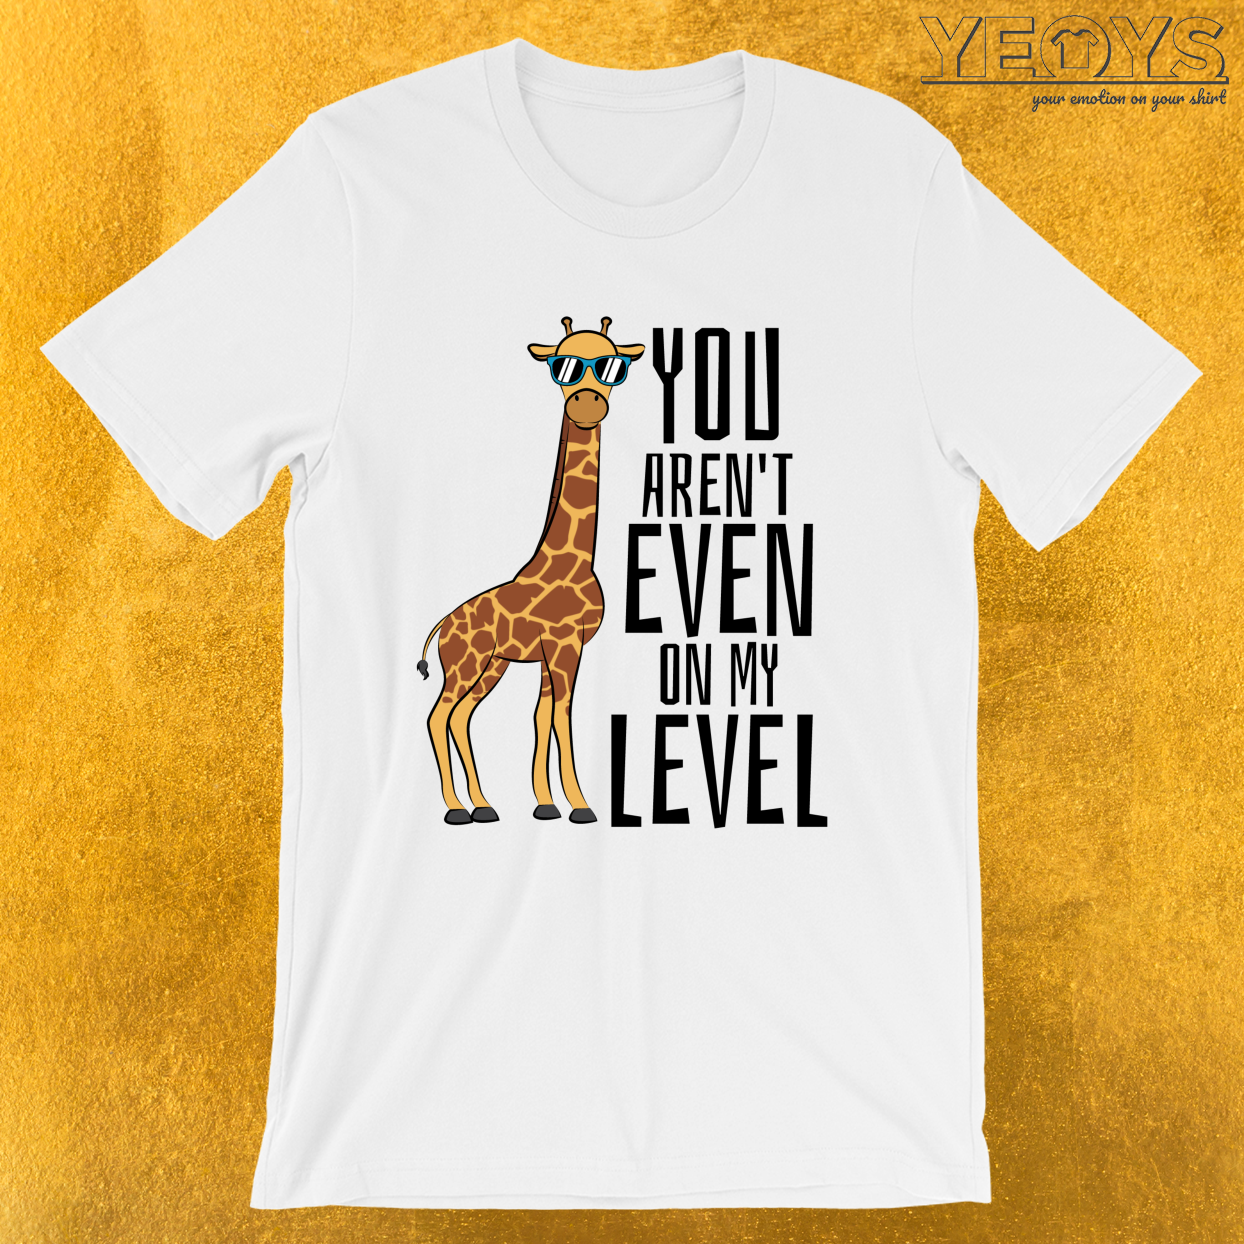 You Aren't Even On My Level – Giraffe Pun Tee